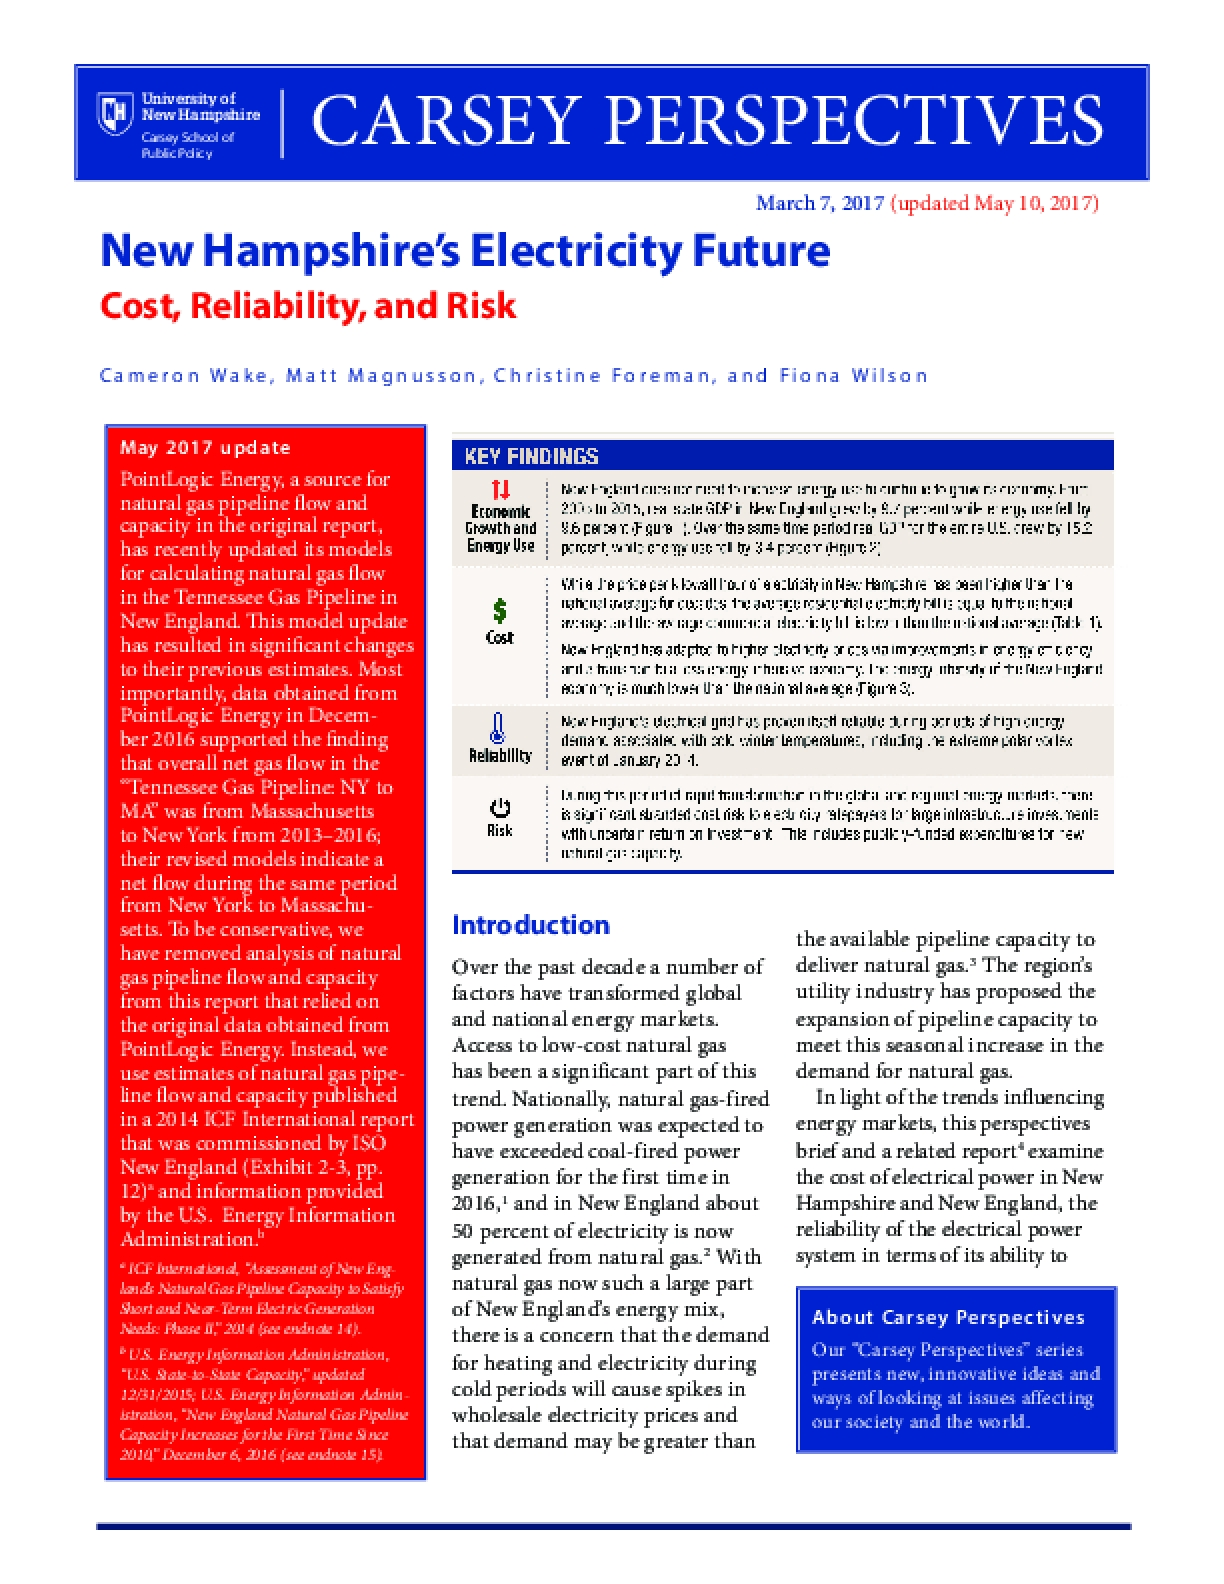 Carsey Perspectives: New Hampshire's Electricity Future